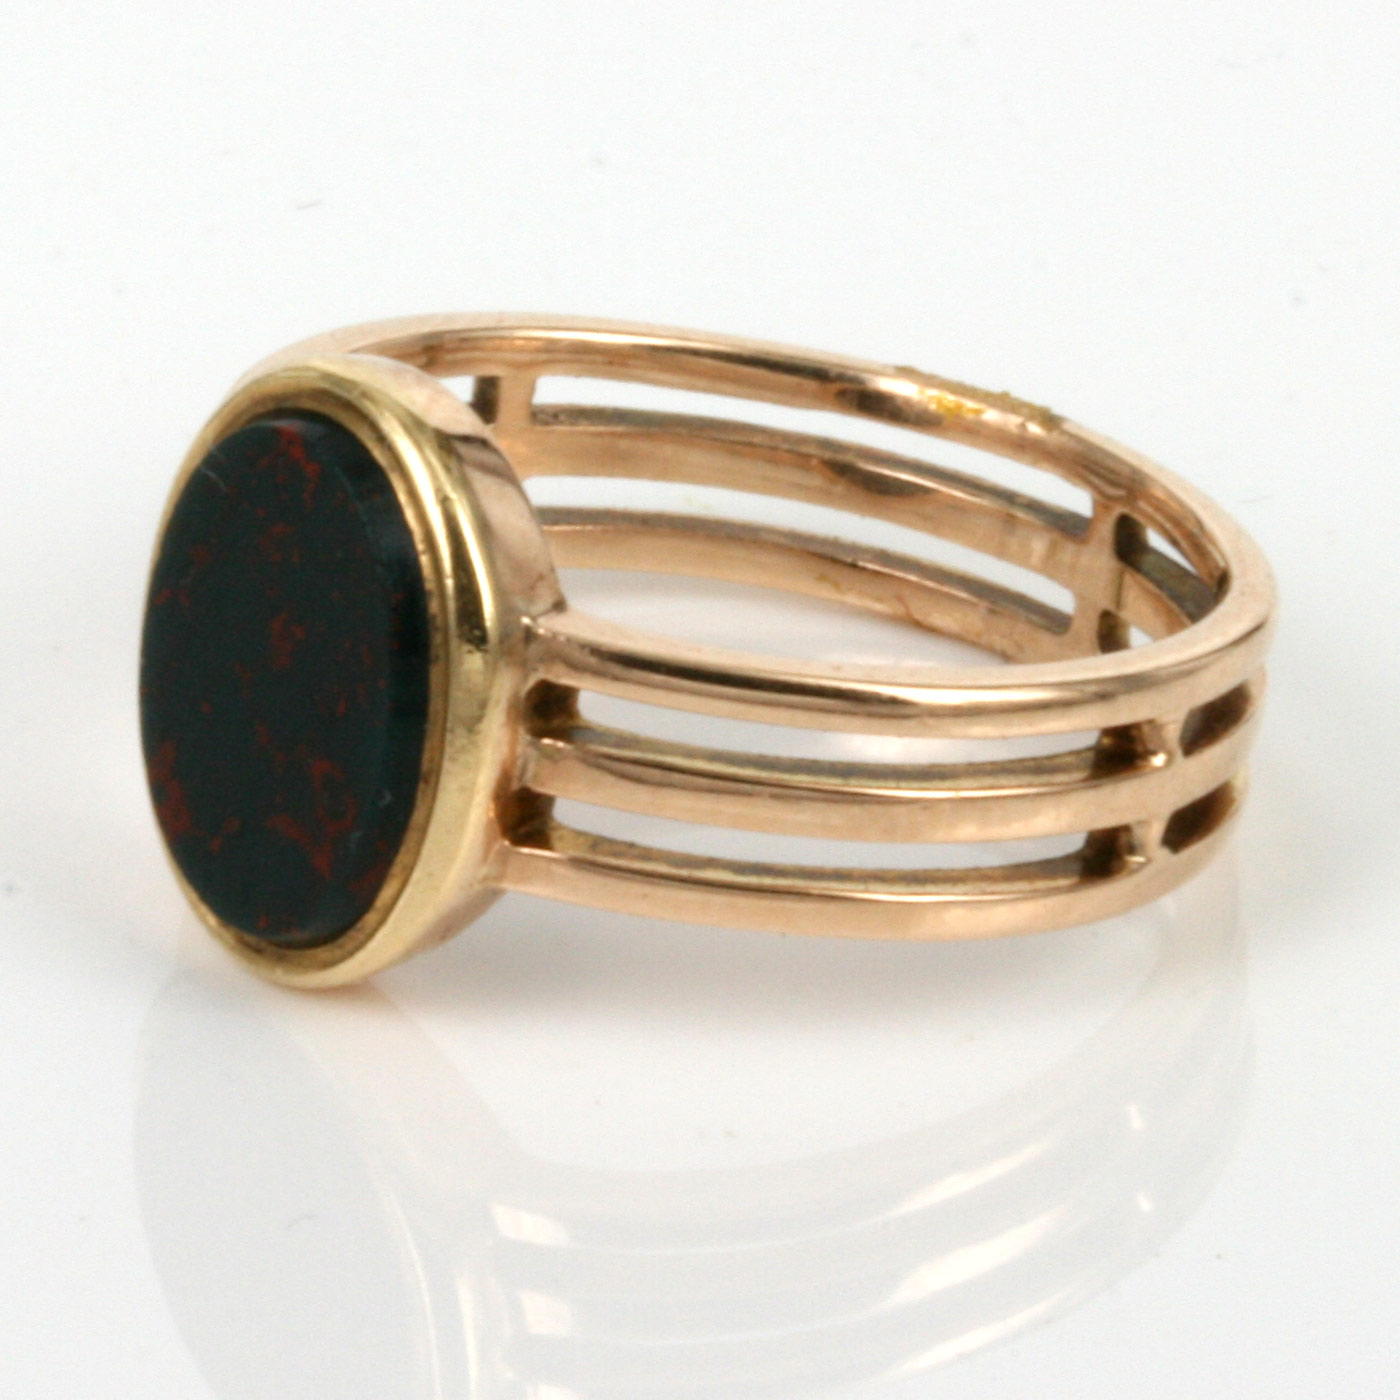 Buy Antique rose gold signet ring with bloodstone  Sold